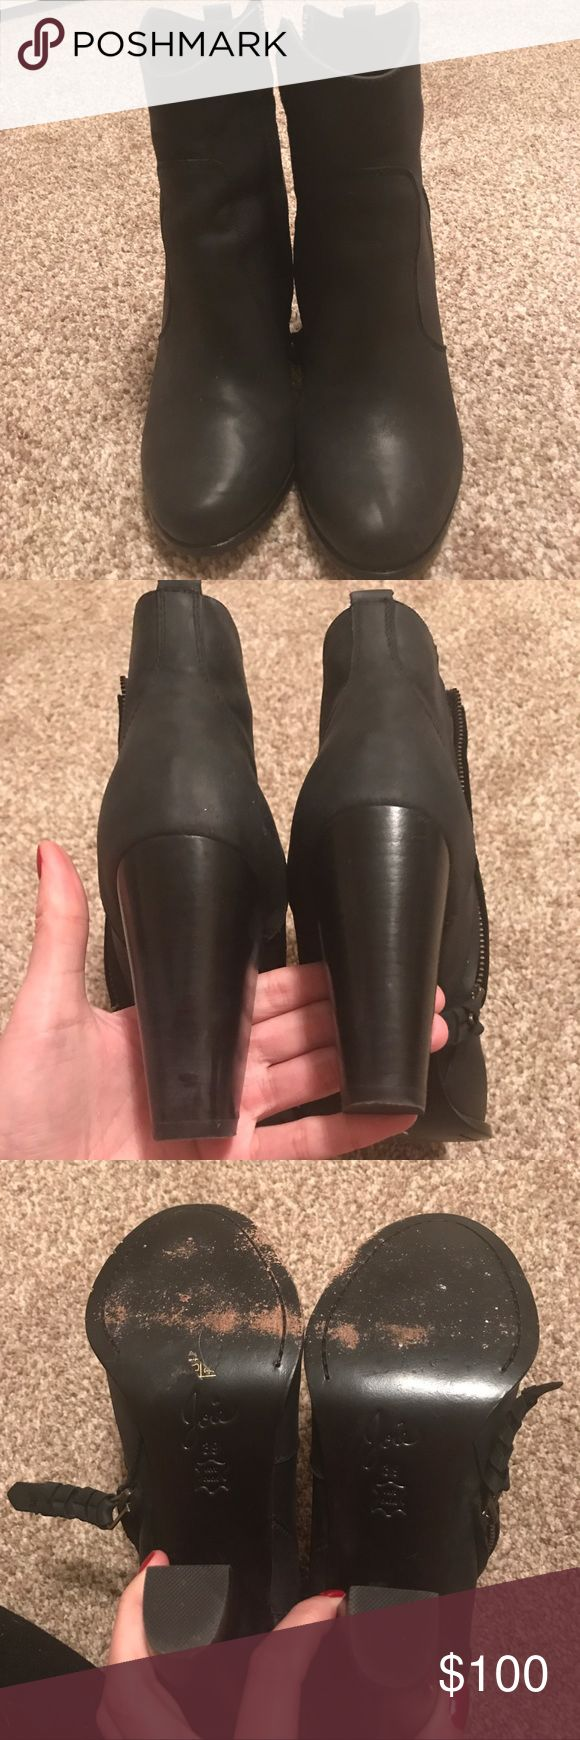 Joie Dalton leather boot Great used condition. Worn a couple of times. Fits size 8.5 too. Joie Shoes Ankle Boots & Booties